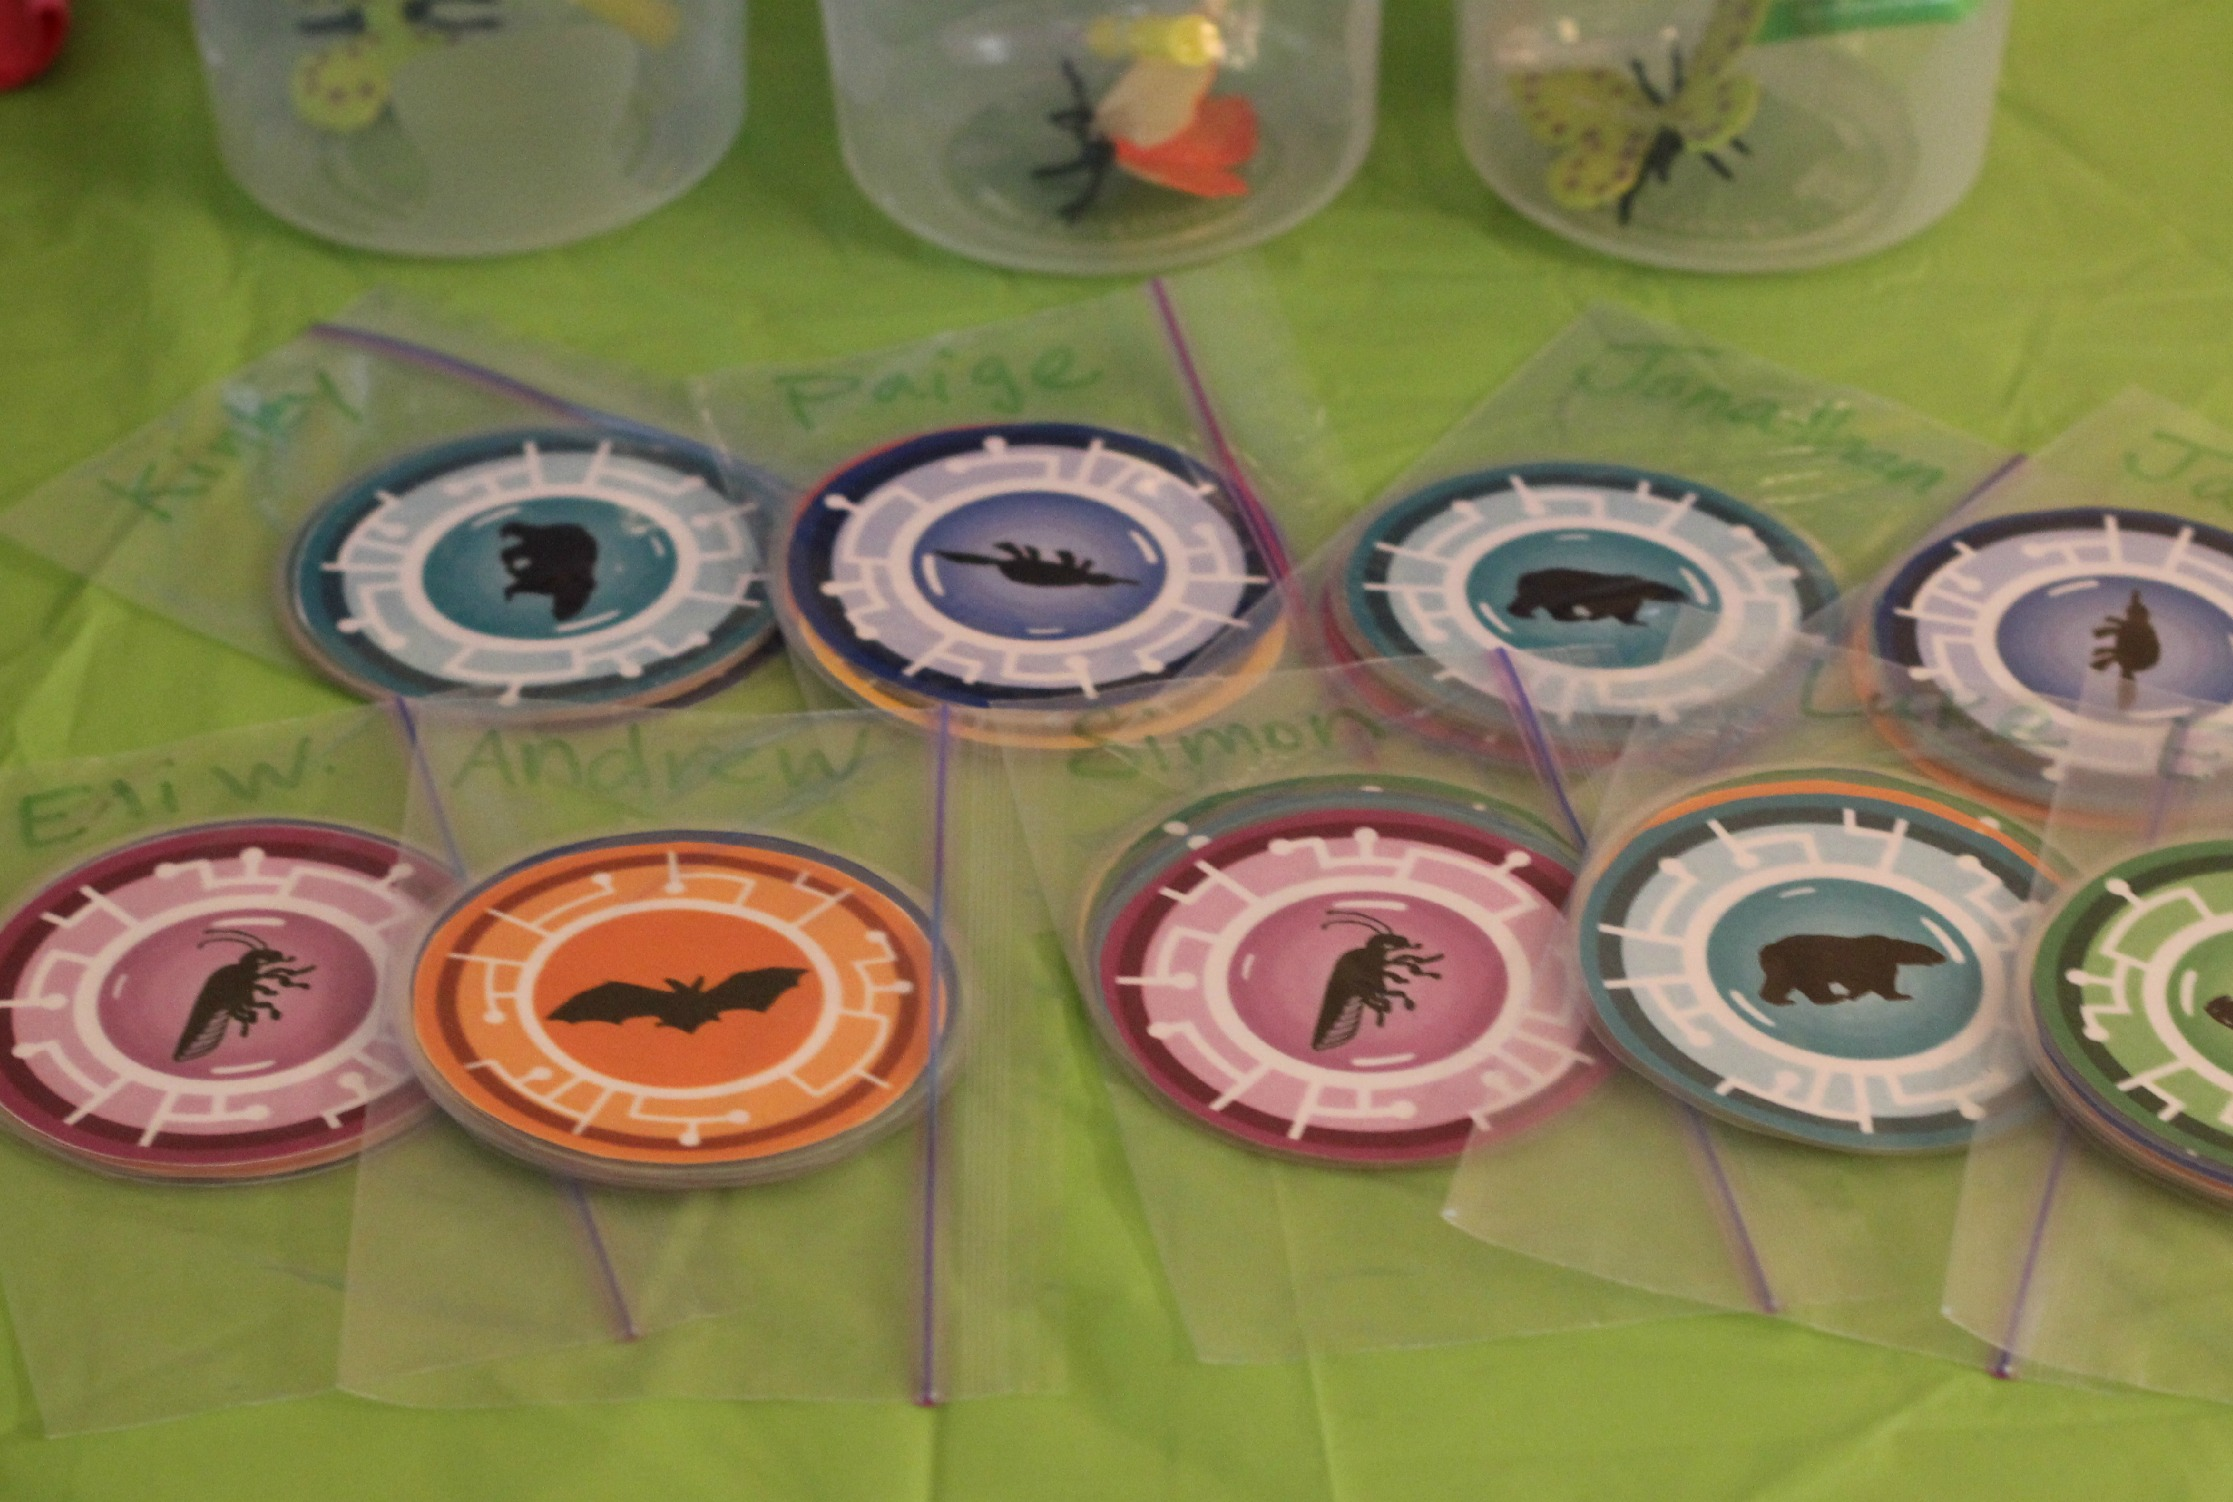 picture about Wild Kratts Creature Power Discs Printable titled Do-it-yourself Wild Kratts Celebration Decorations Functions